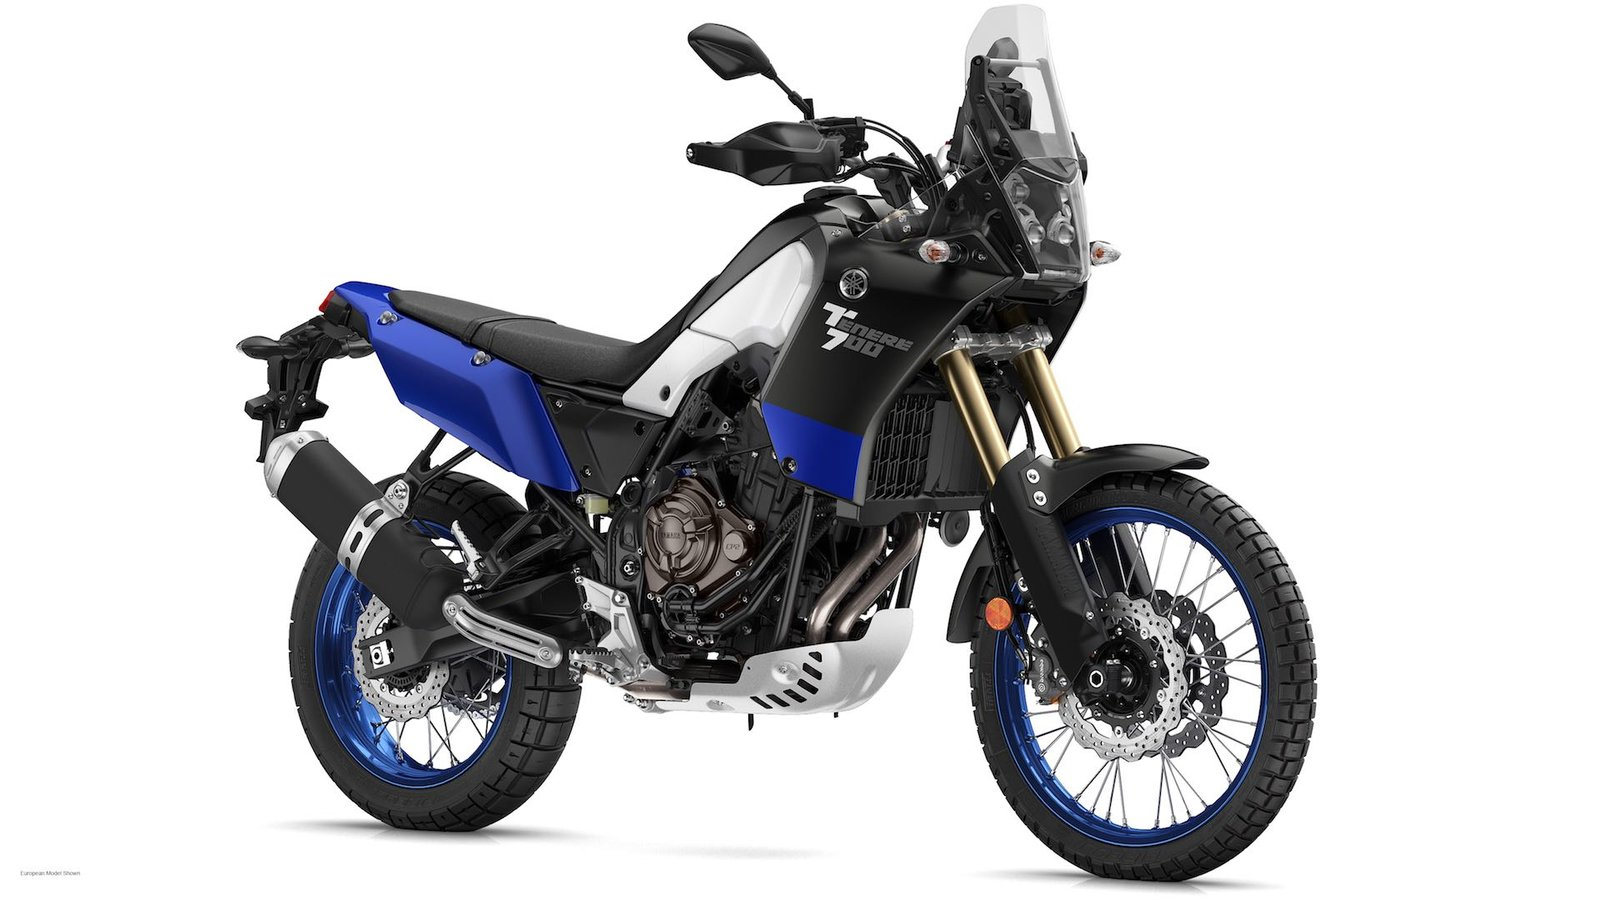 2021-yamaha-tenere-700-to-usa-first-look-ultimate-motorcycling-14.jpg